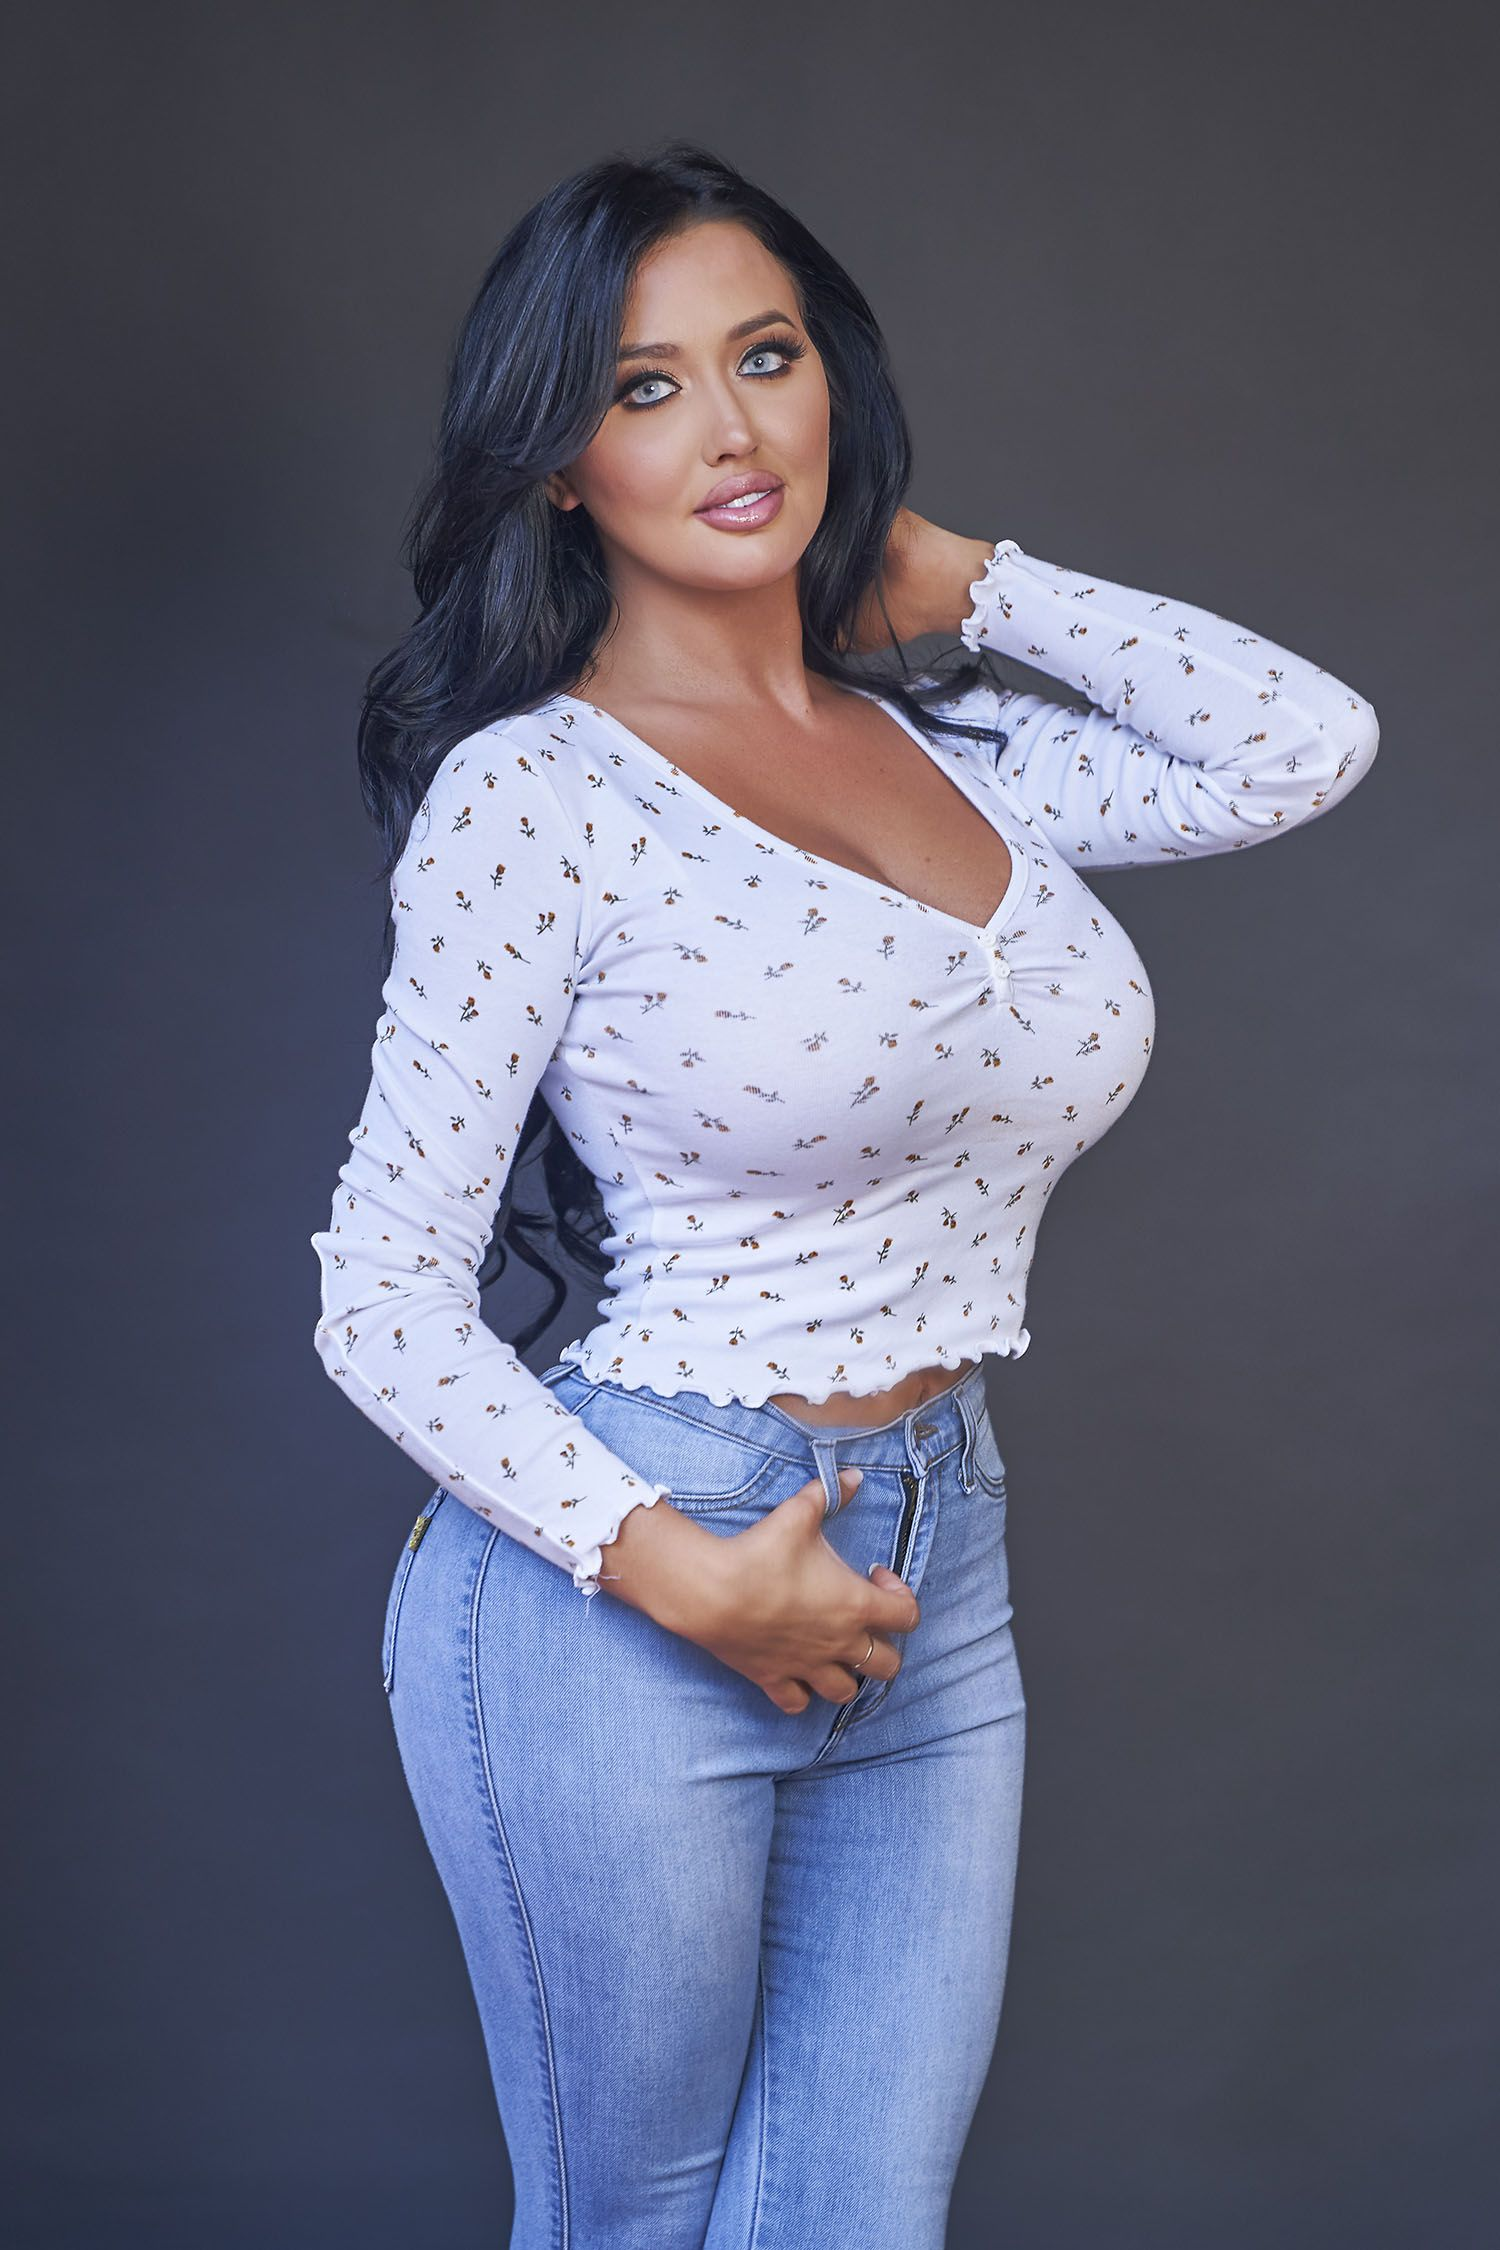 Becky Hudson In 2020 Girl Fashion Style Women Glamour Modeling Последние твиты от becky hudson (@beckyhudsonlive). becky hudson in 2020 girl fashion